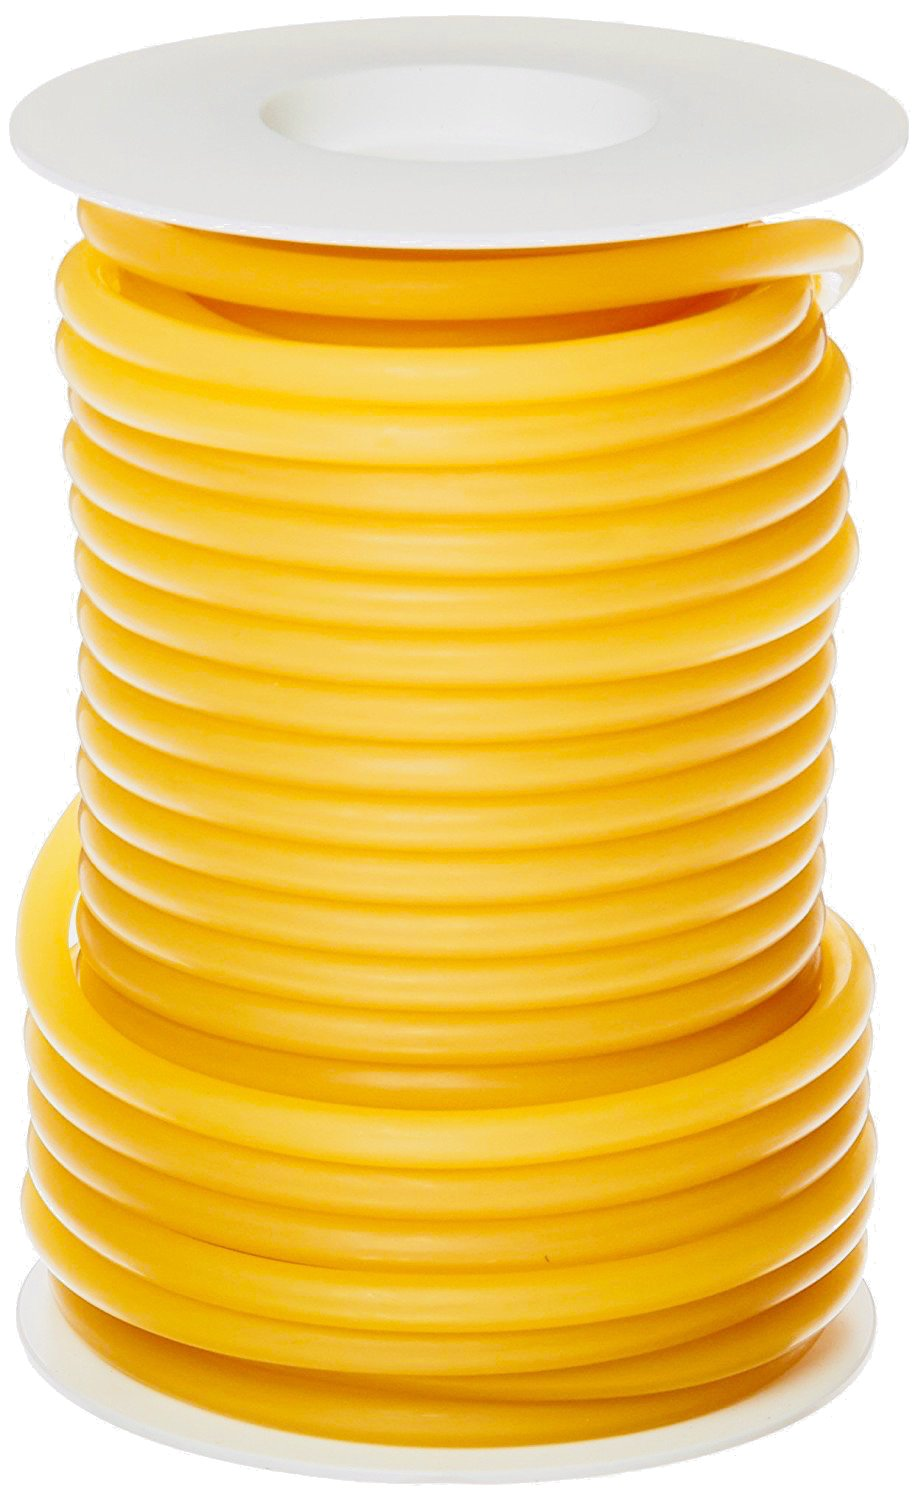 pivit Flexible Seamless Natural Latex Rubber Band Tubing | ¼ I.D, 3/8'' O.D, 1/16'' Wall Thickness | 50ft One Continuous Length | Extreme Flexibility Durability & Elastic Stretch Memory | Made in USA by pivit